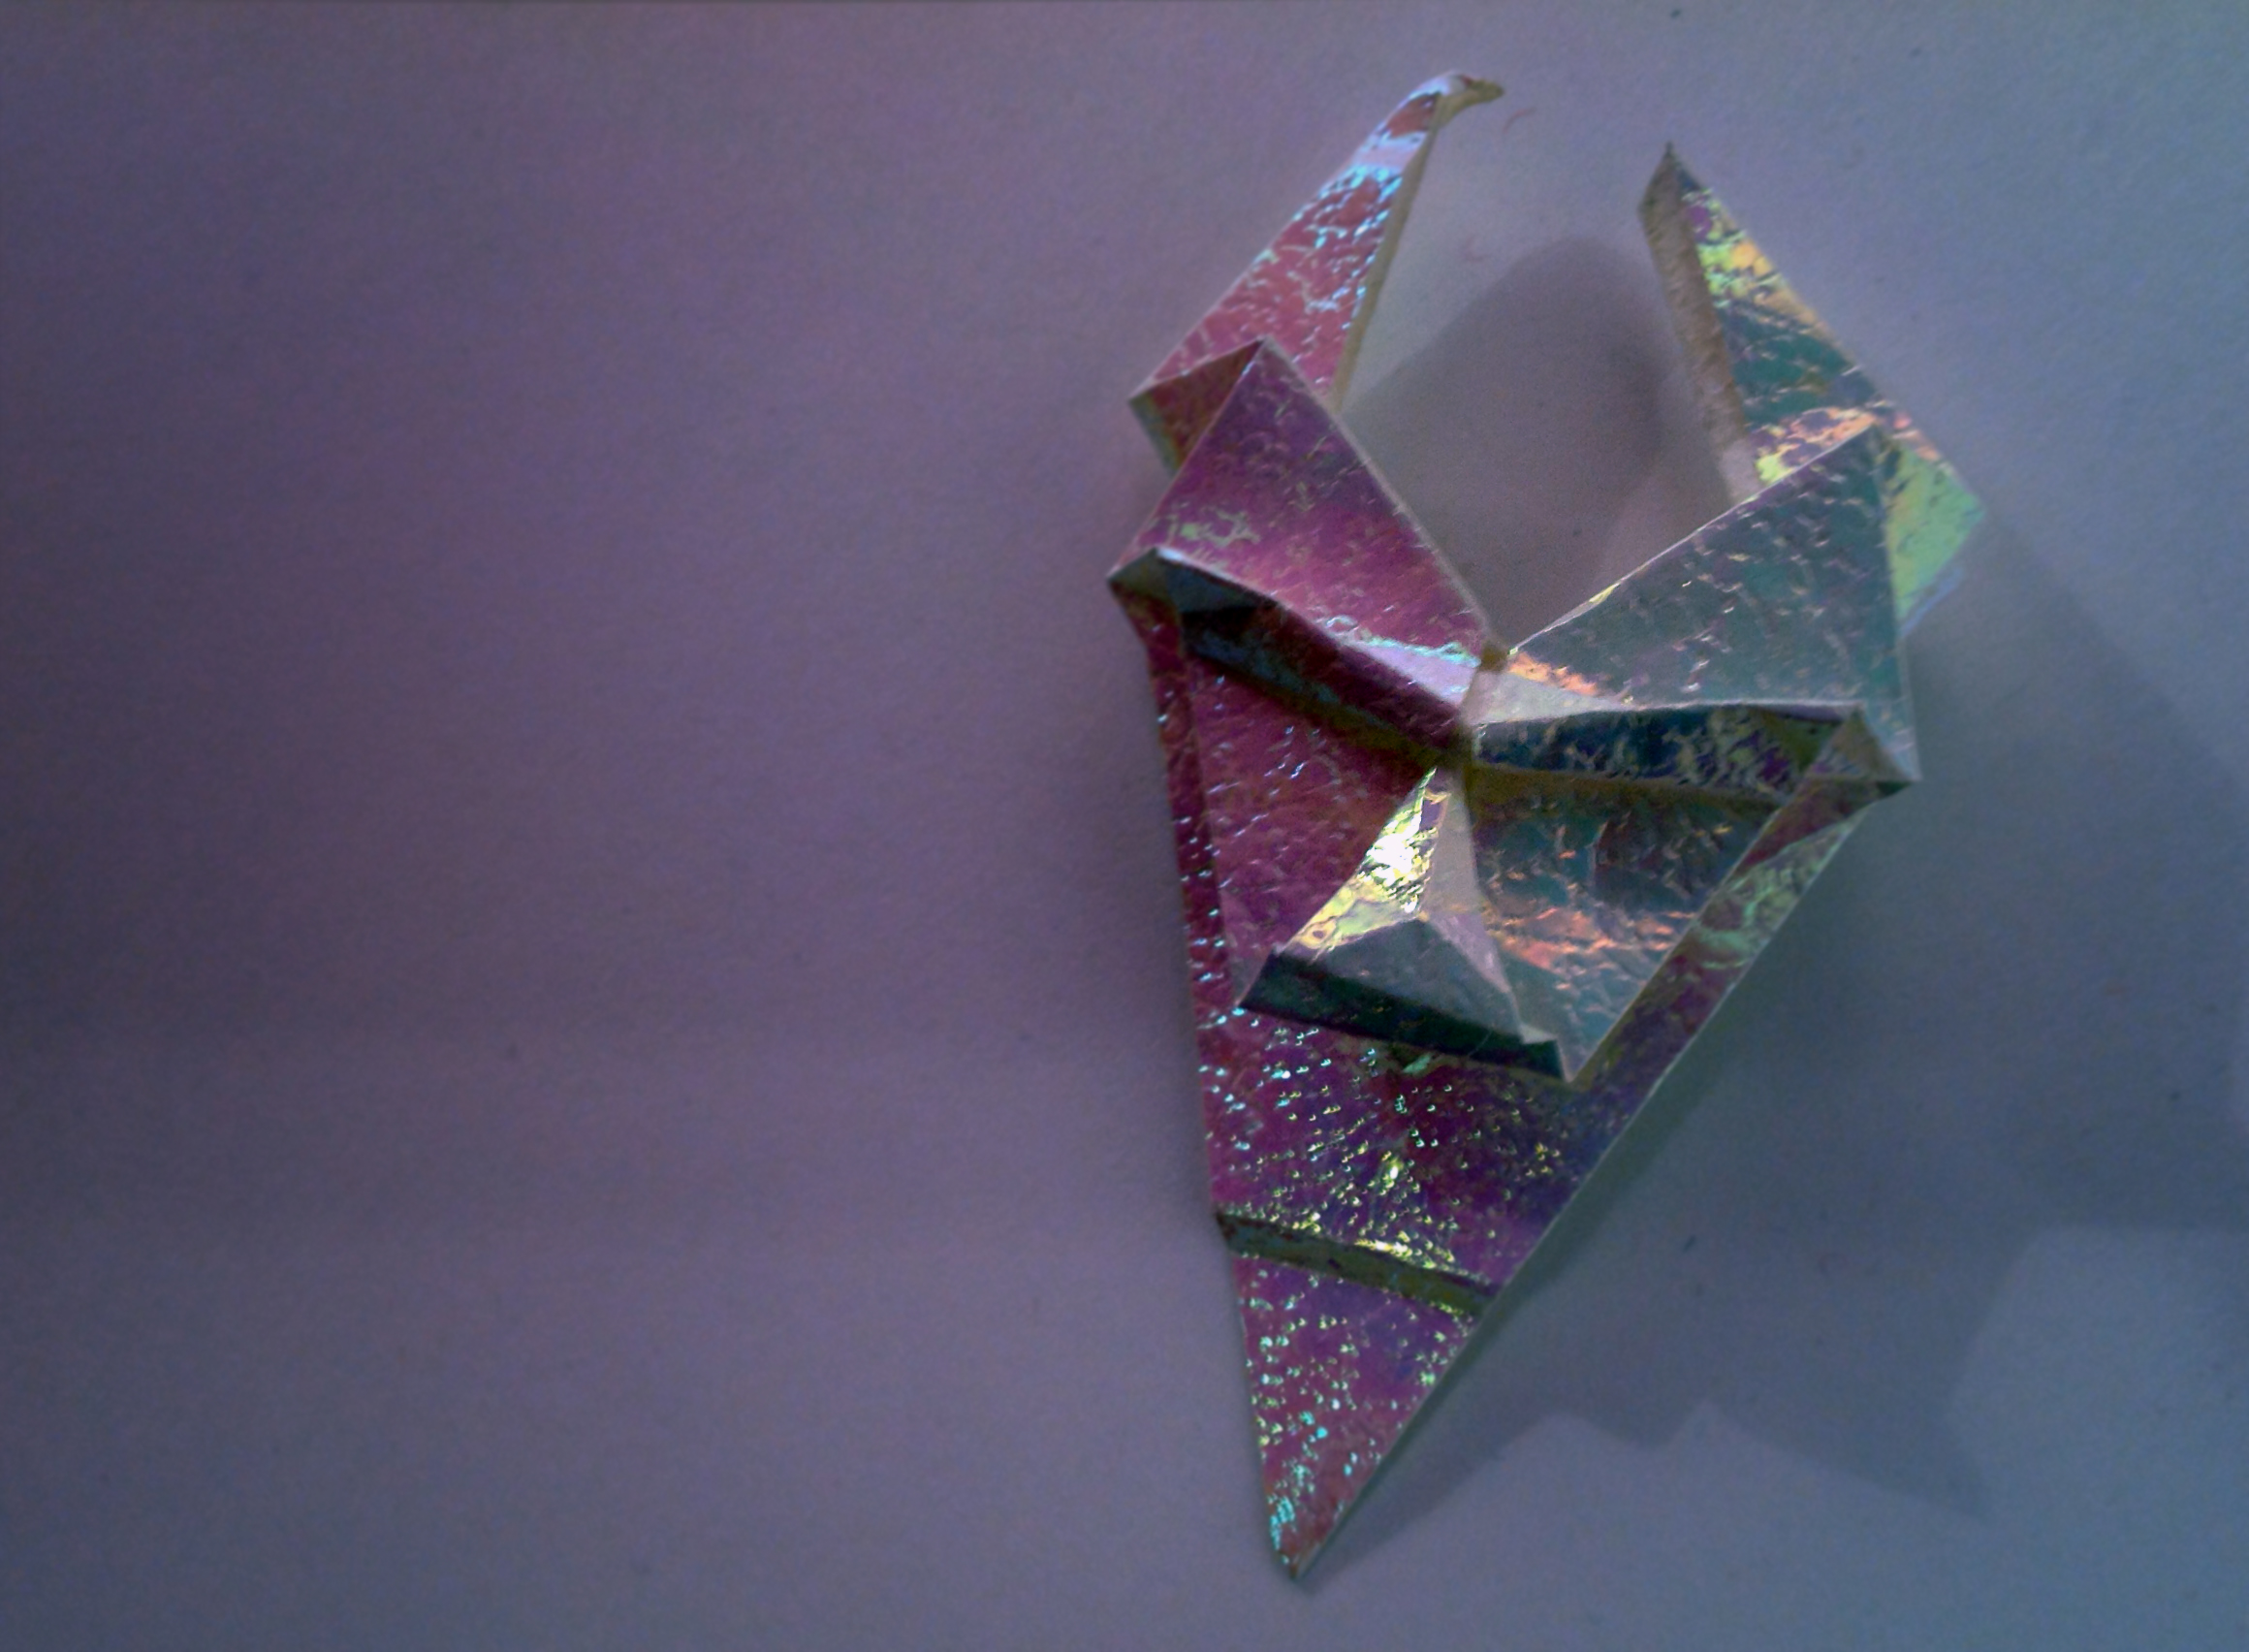 White Iridescent Origami Devil Mask by Carrie Gates